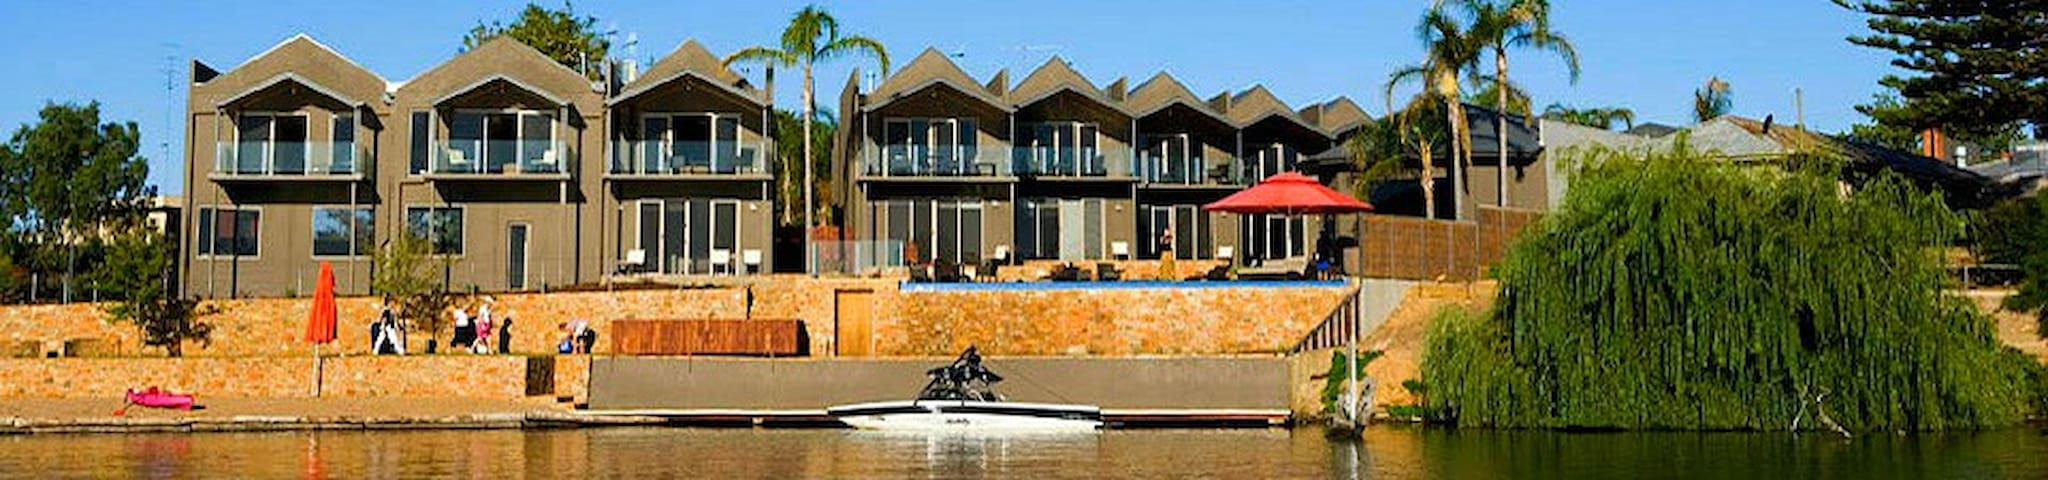 The Jetty Lake Nagambie 3 bedroom Apartment